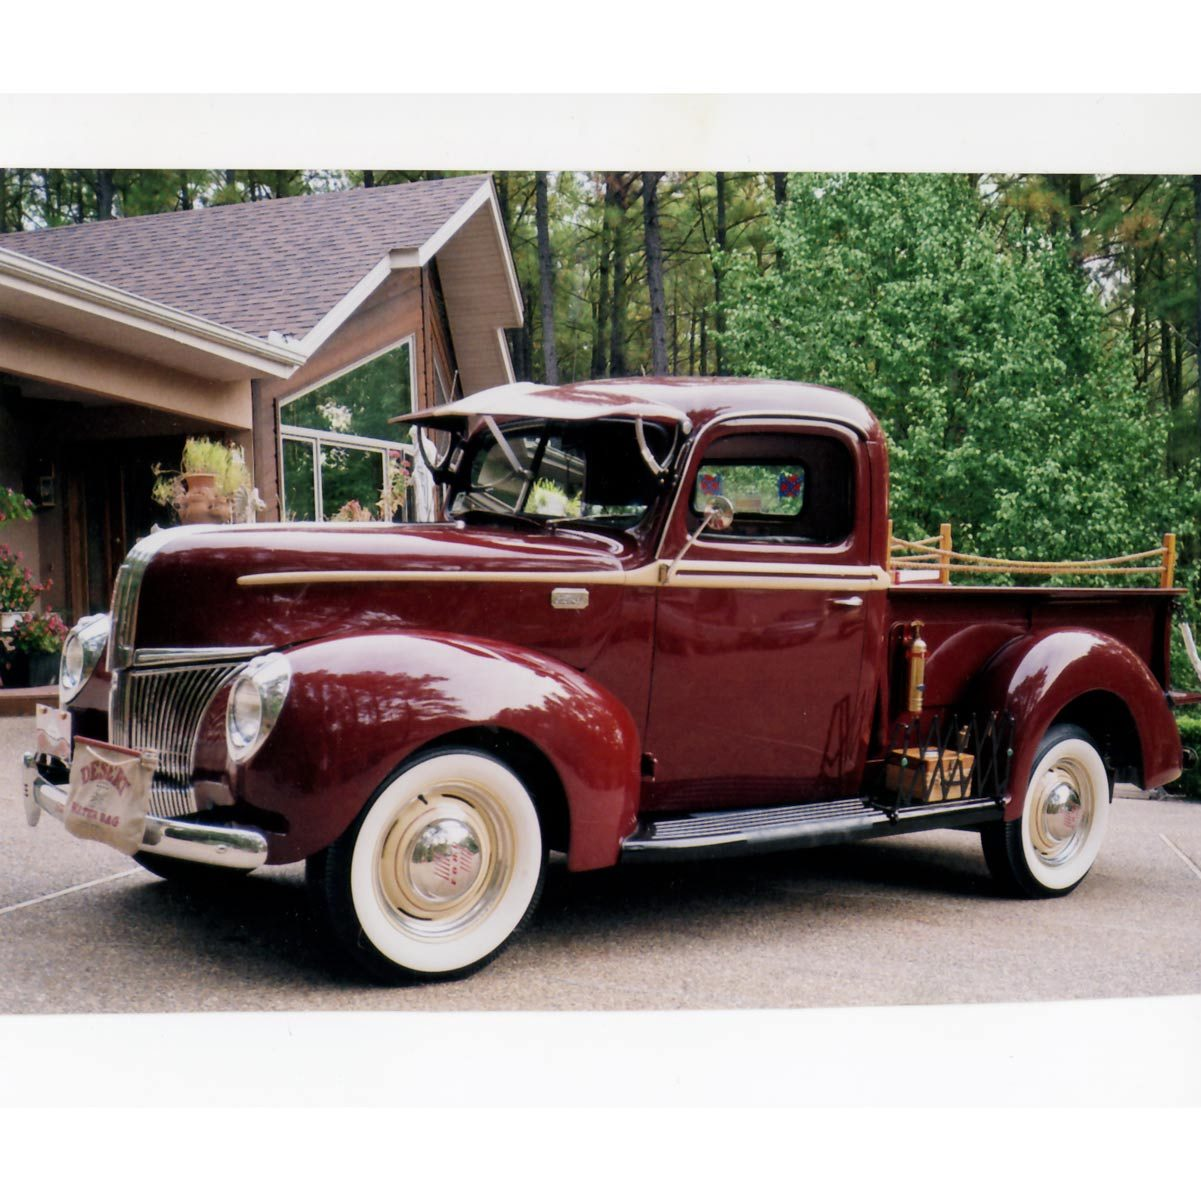 Are You A Classic Car Expert Guess These Vintage Cars The Family 1941 Ford F100 V8 Half Ton Pickup Truck